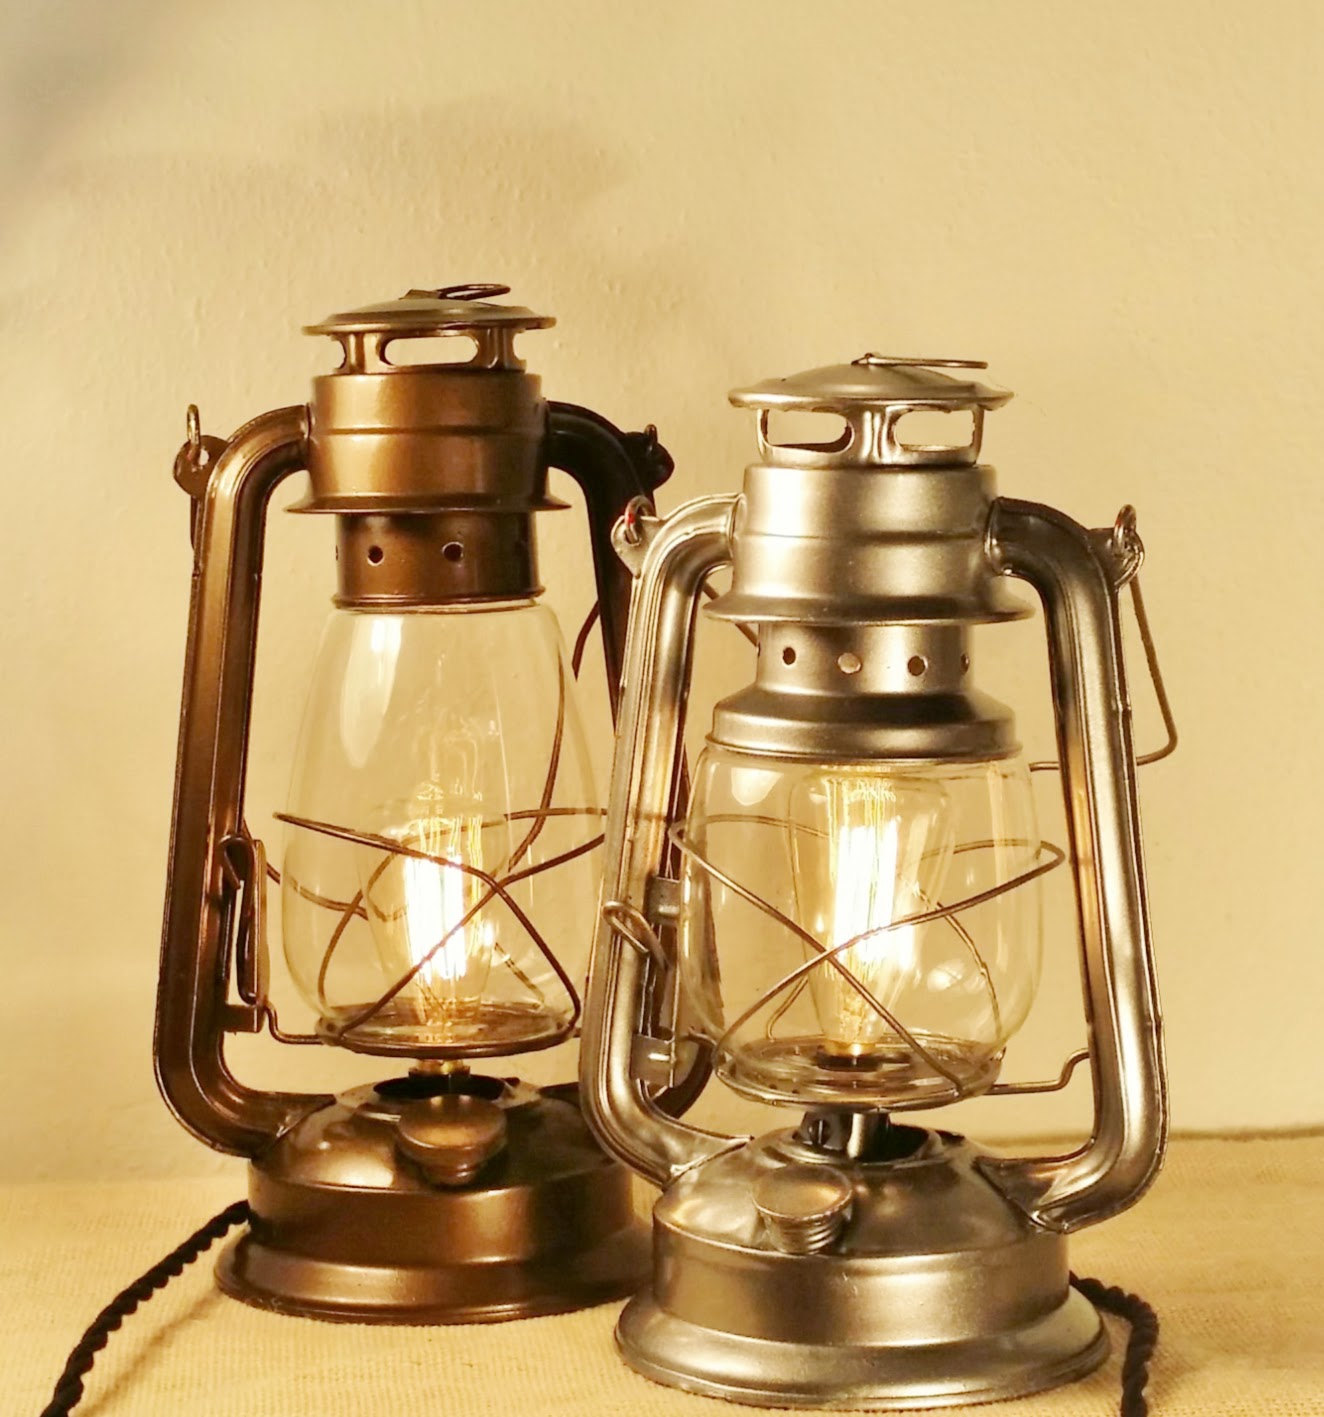 10 reasons why you should using electric lantern table lamp many restaurants who like to go with the vintage theme would also be using this electric lantern table lamp if you want to go with the vintage look aloadofball Images